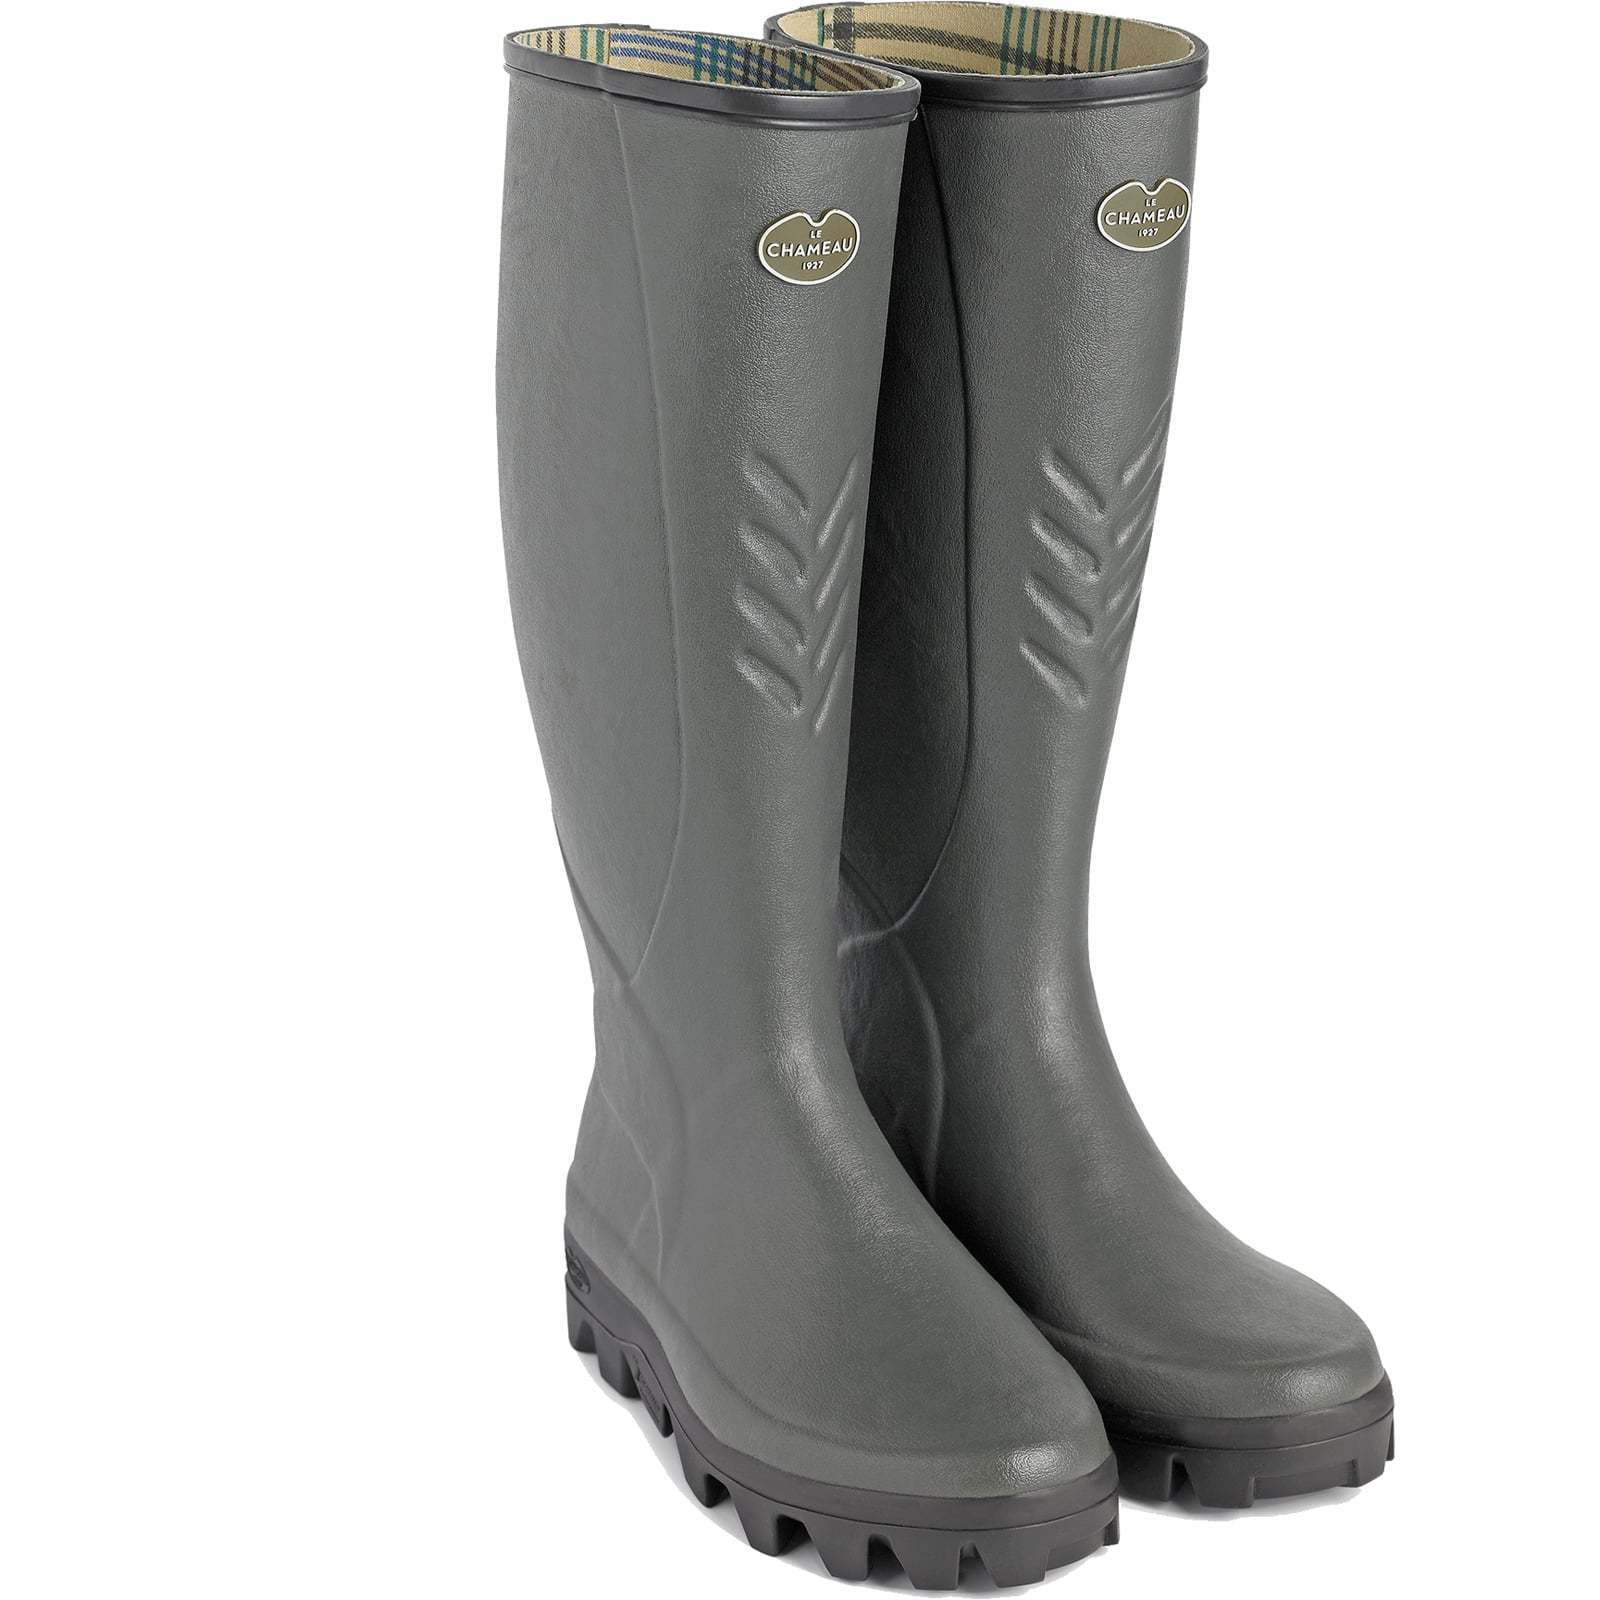 Le Chameau Ceres Jersey Lined Wellingtons - Dark Green - RRP  Our Price